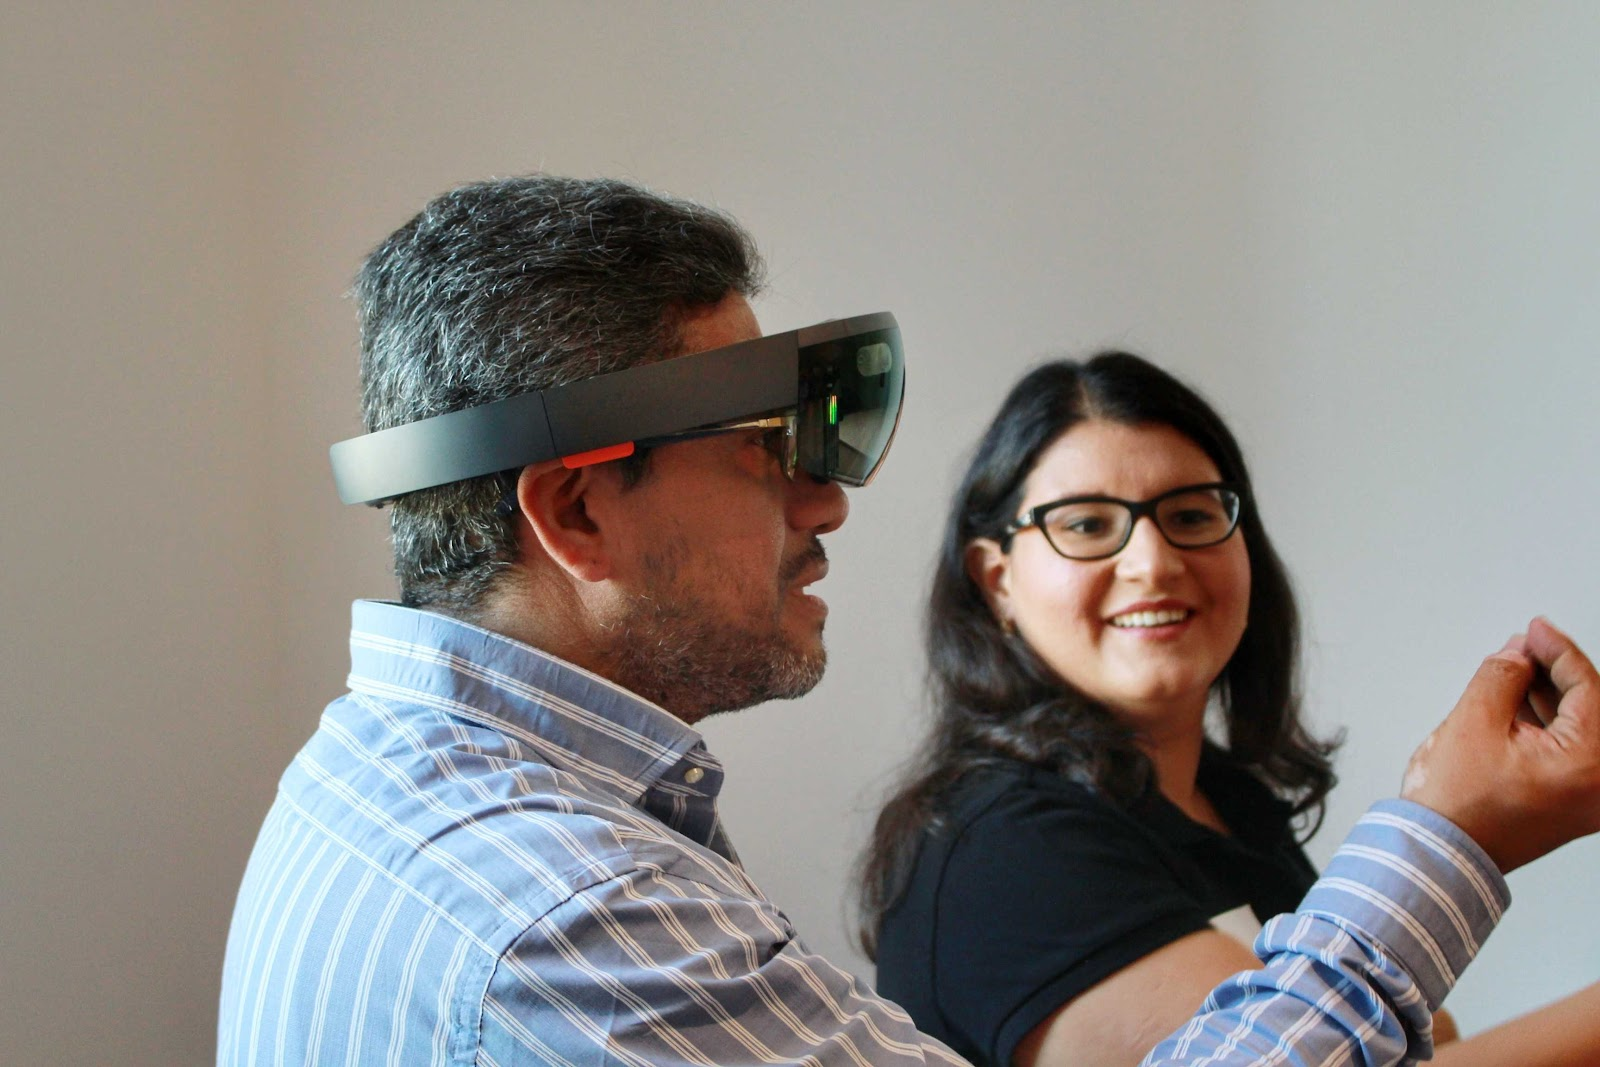 augmented reality and museums: Workshop participant tries out HoloLens